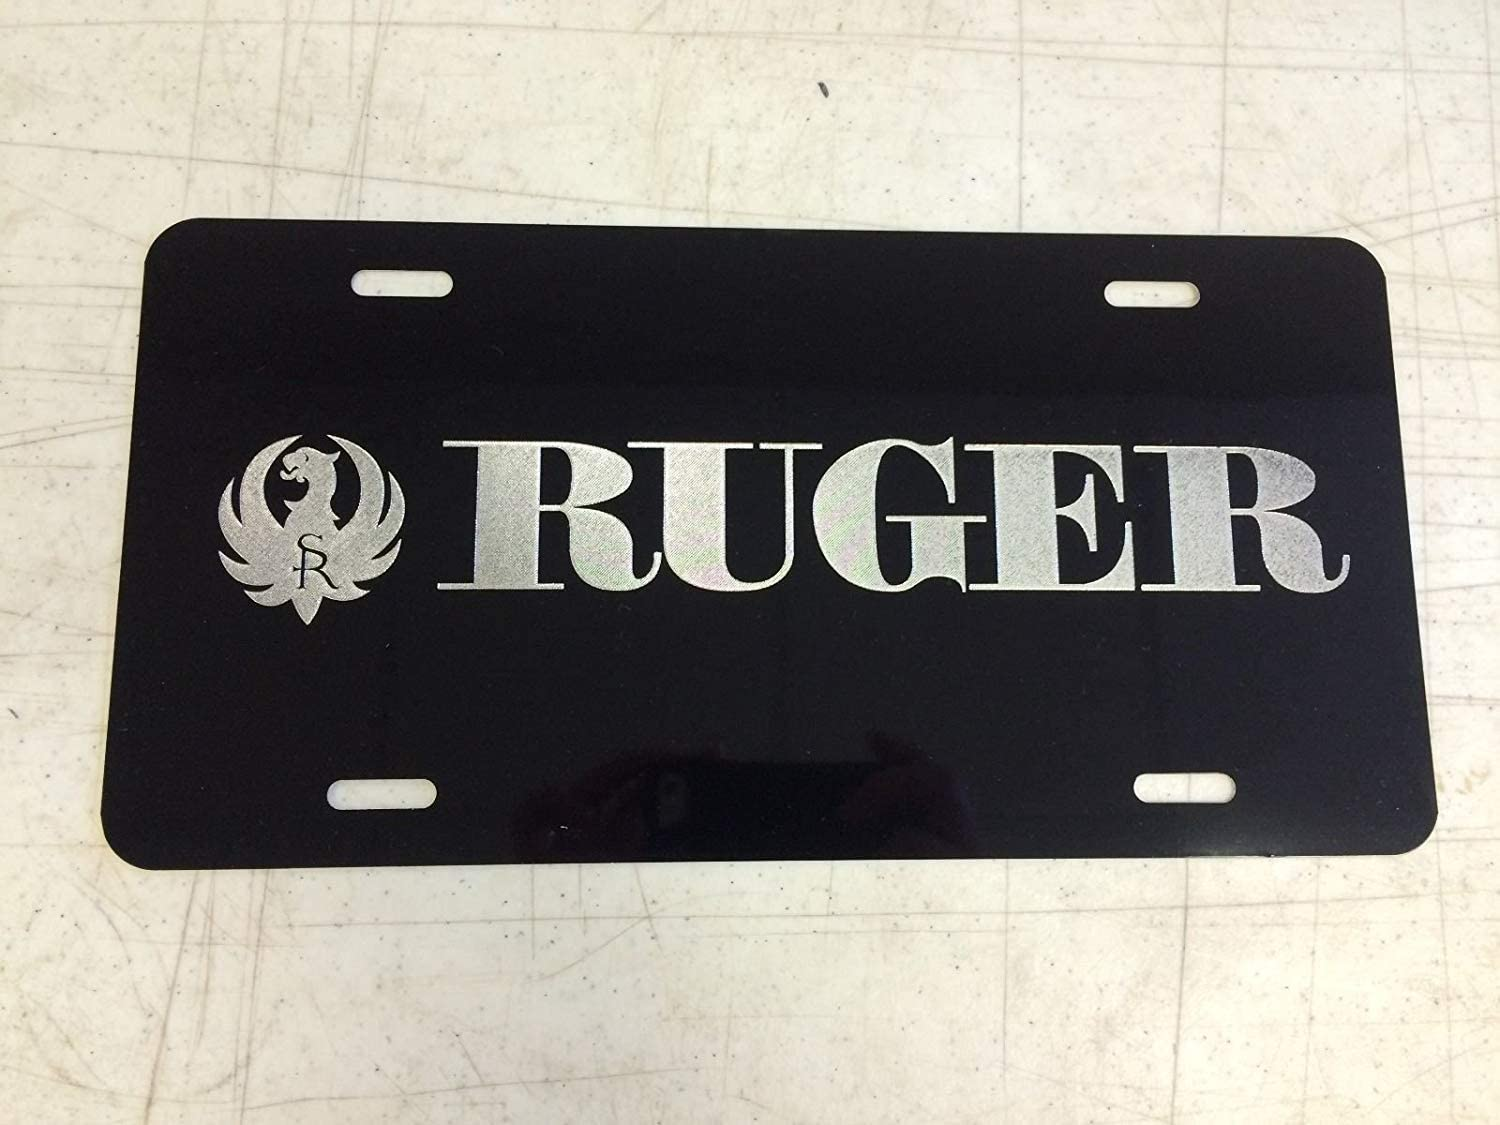 RNUAB Ruger Car Tag on Stainless Steel License Plate Frame Metal 12 X 6 Inch